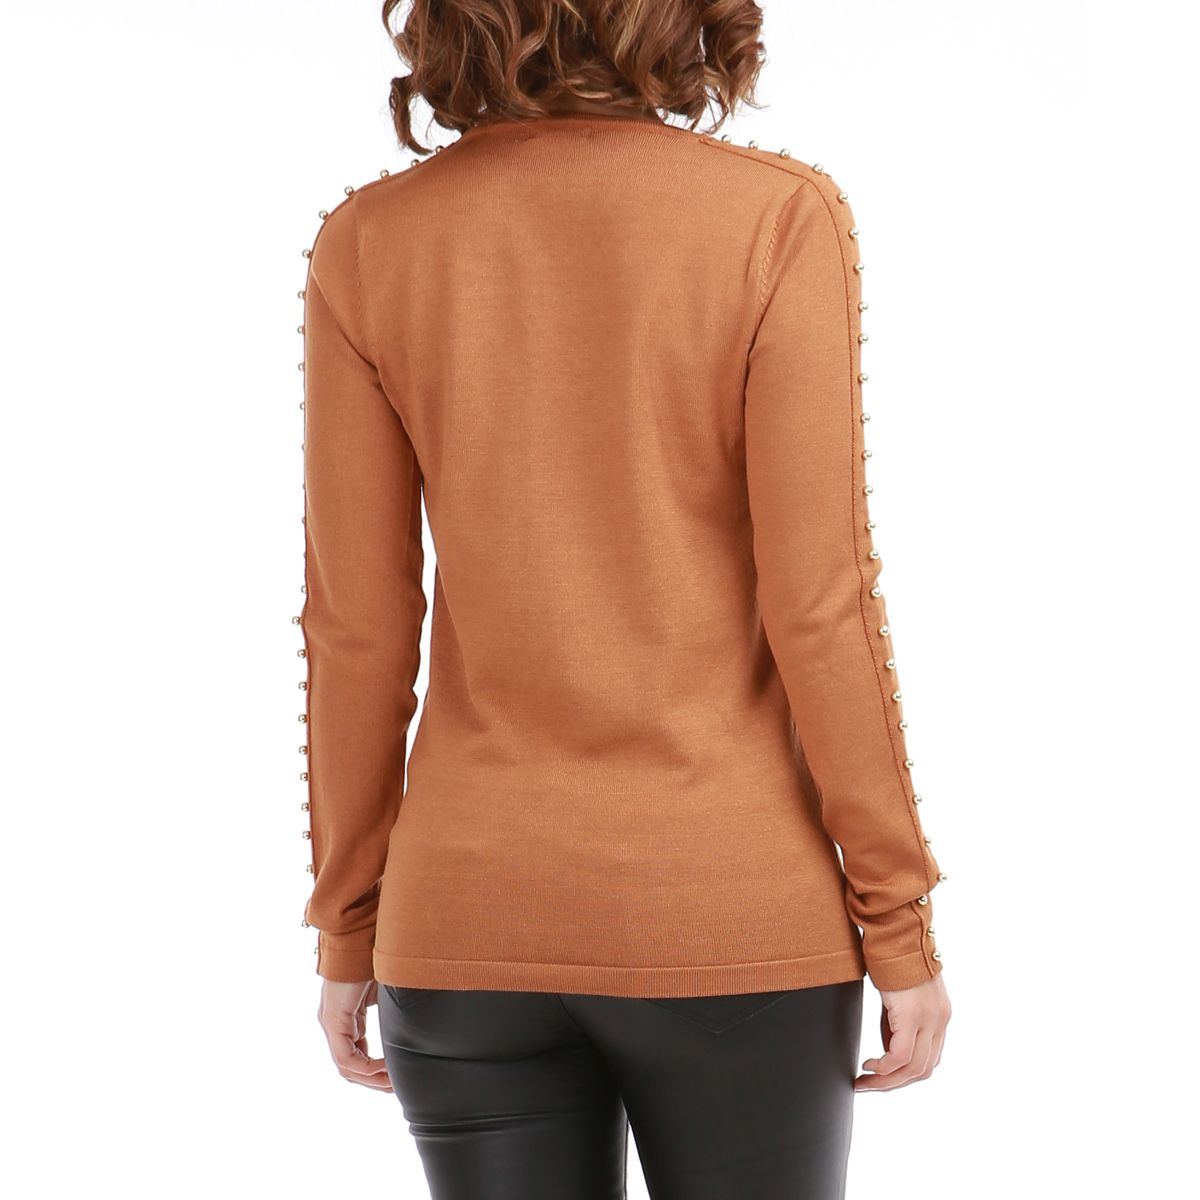 Pull camel perles m talliques femme pas cher la modeuse for Pull camel femme